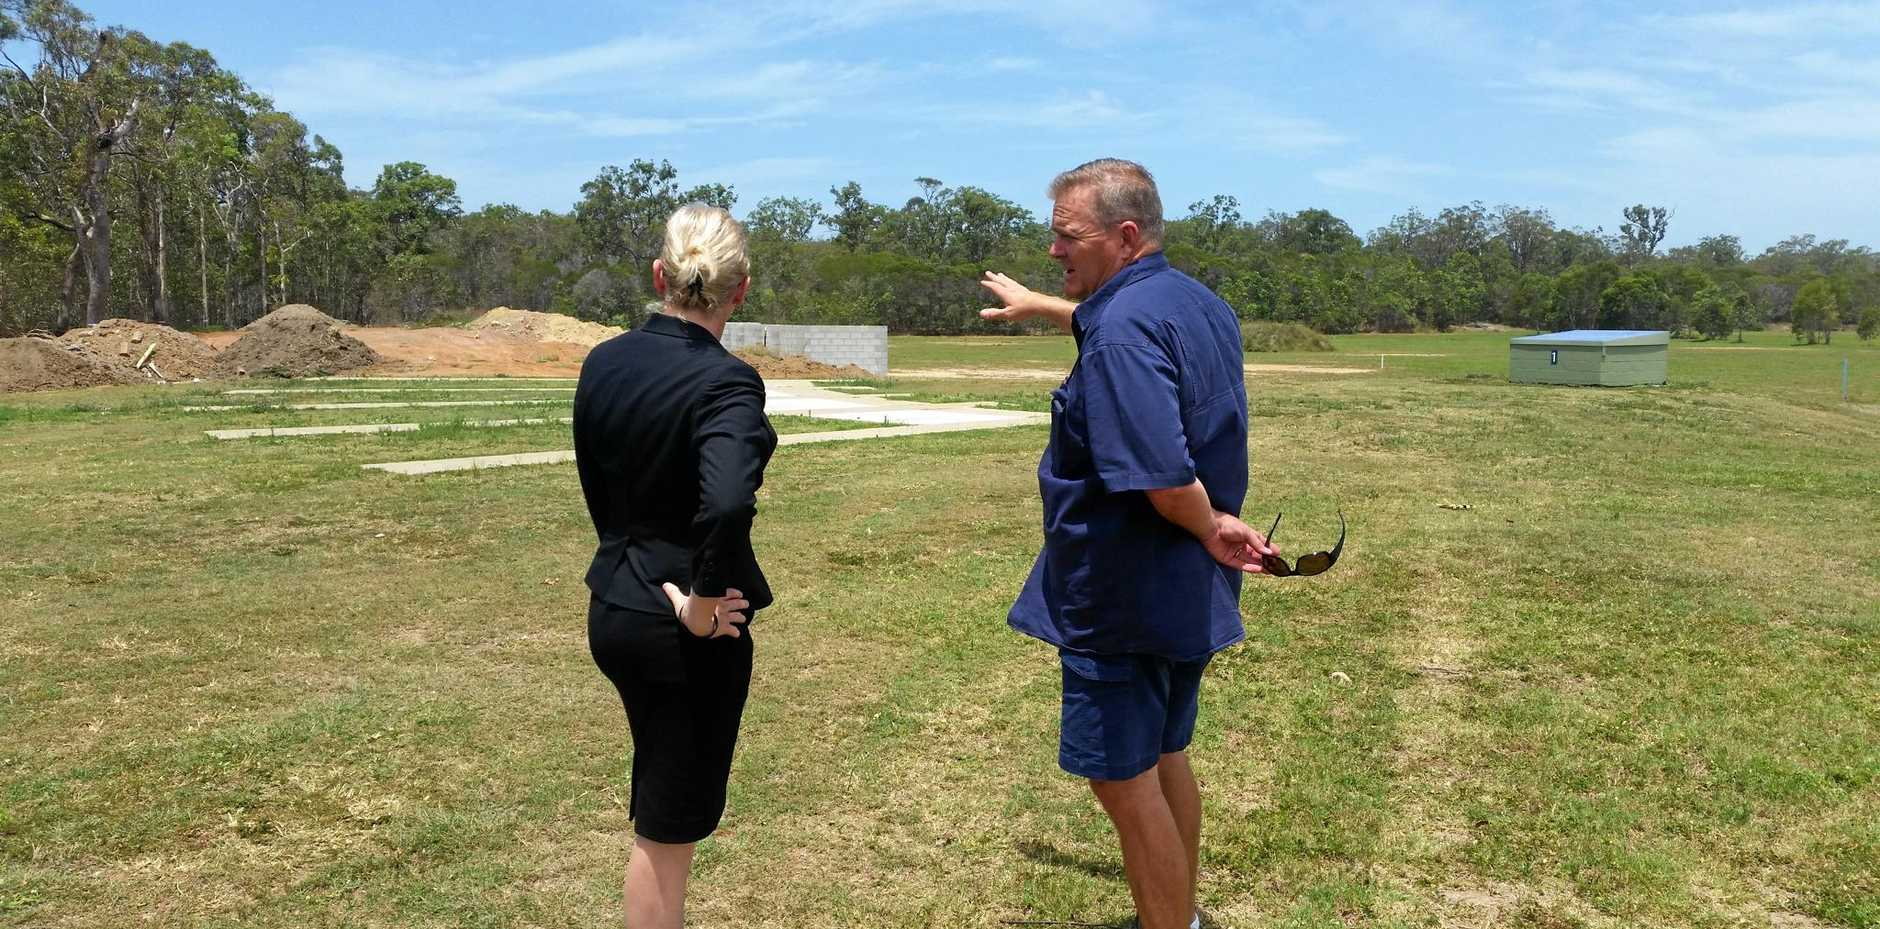 Member for Bundaberg Leanne Donaldson with Bundaberg Clay Target vice president Corey Bylsma after funding was given for new machines for the range.